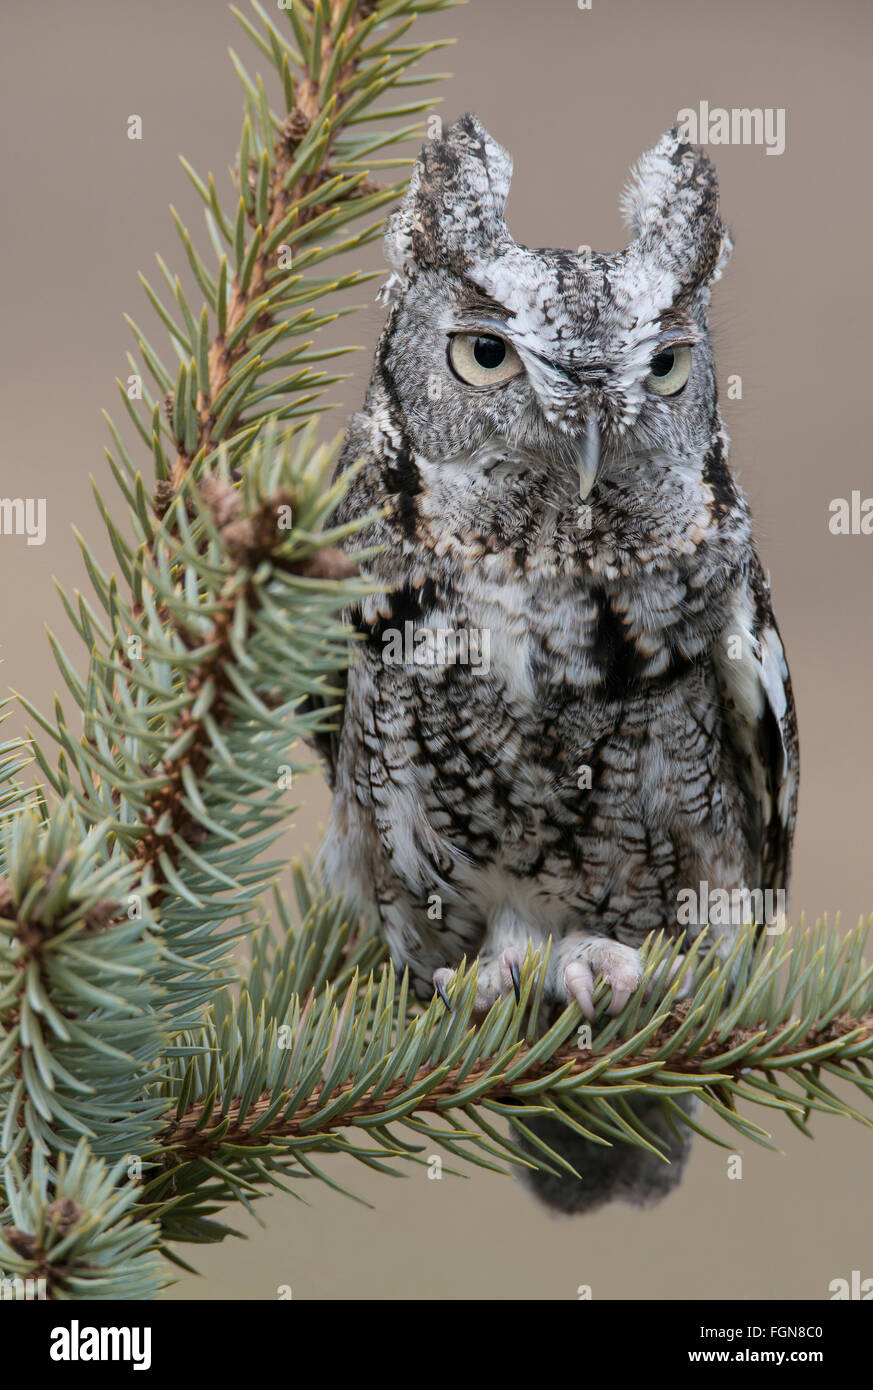 Eastern Gray Screech Owl Otus asio, gray phase, sitting on Spruce tree, Eastern North America - Stock Image